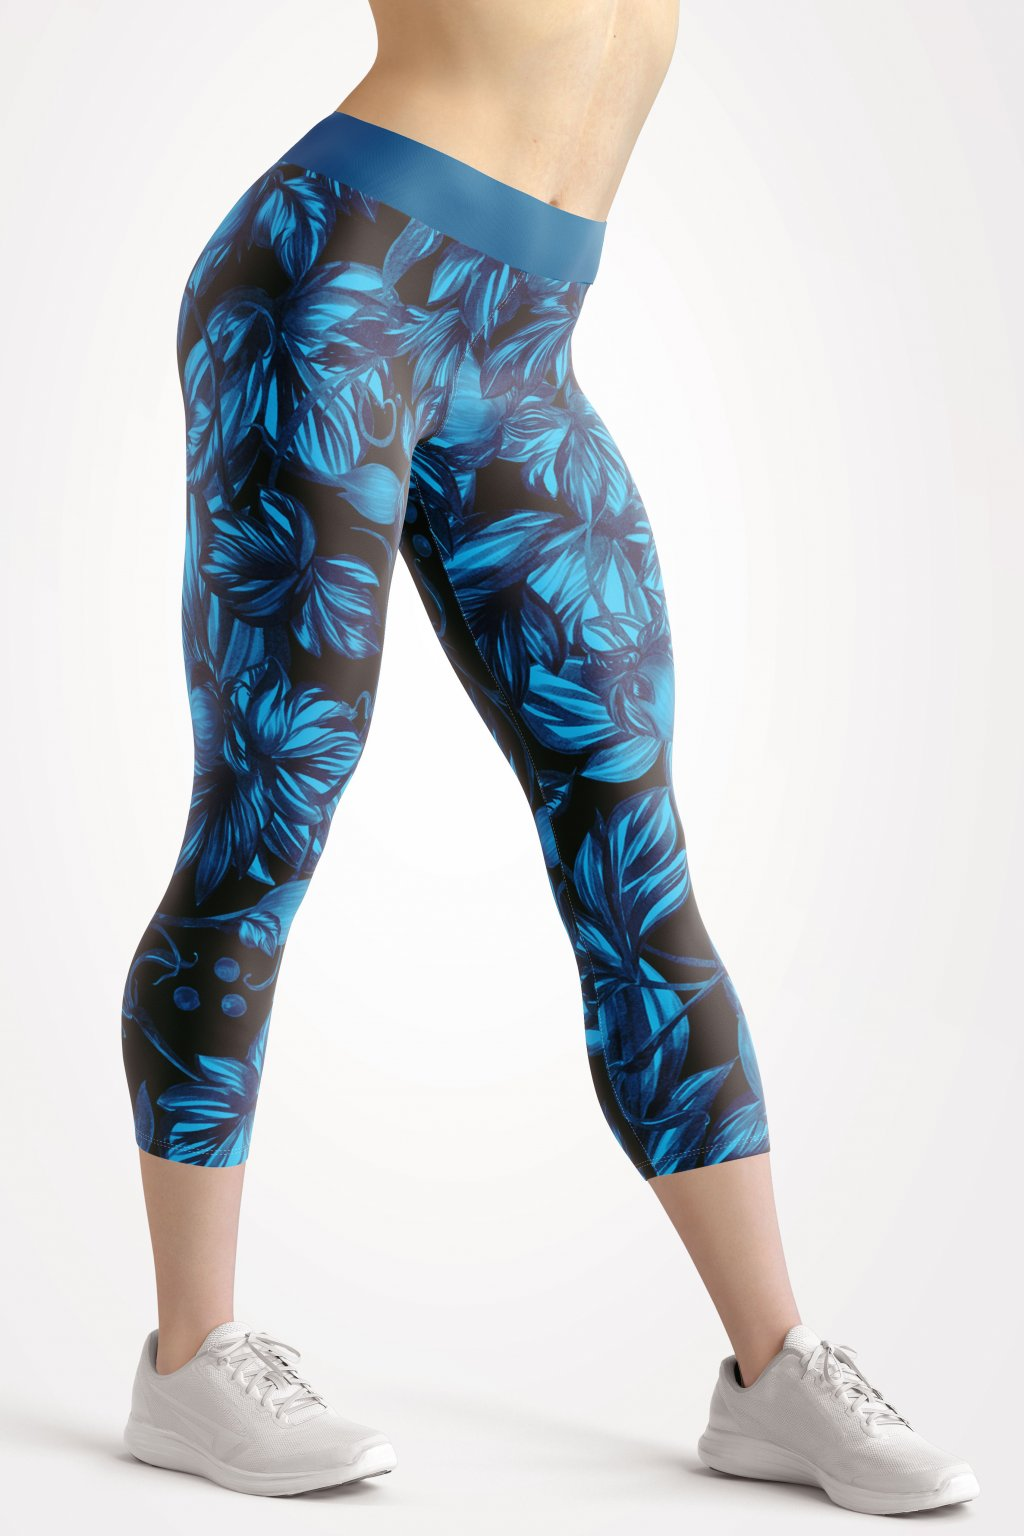 tropical garden 3 4 leggings front by utopy